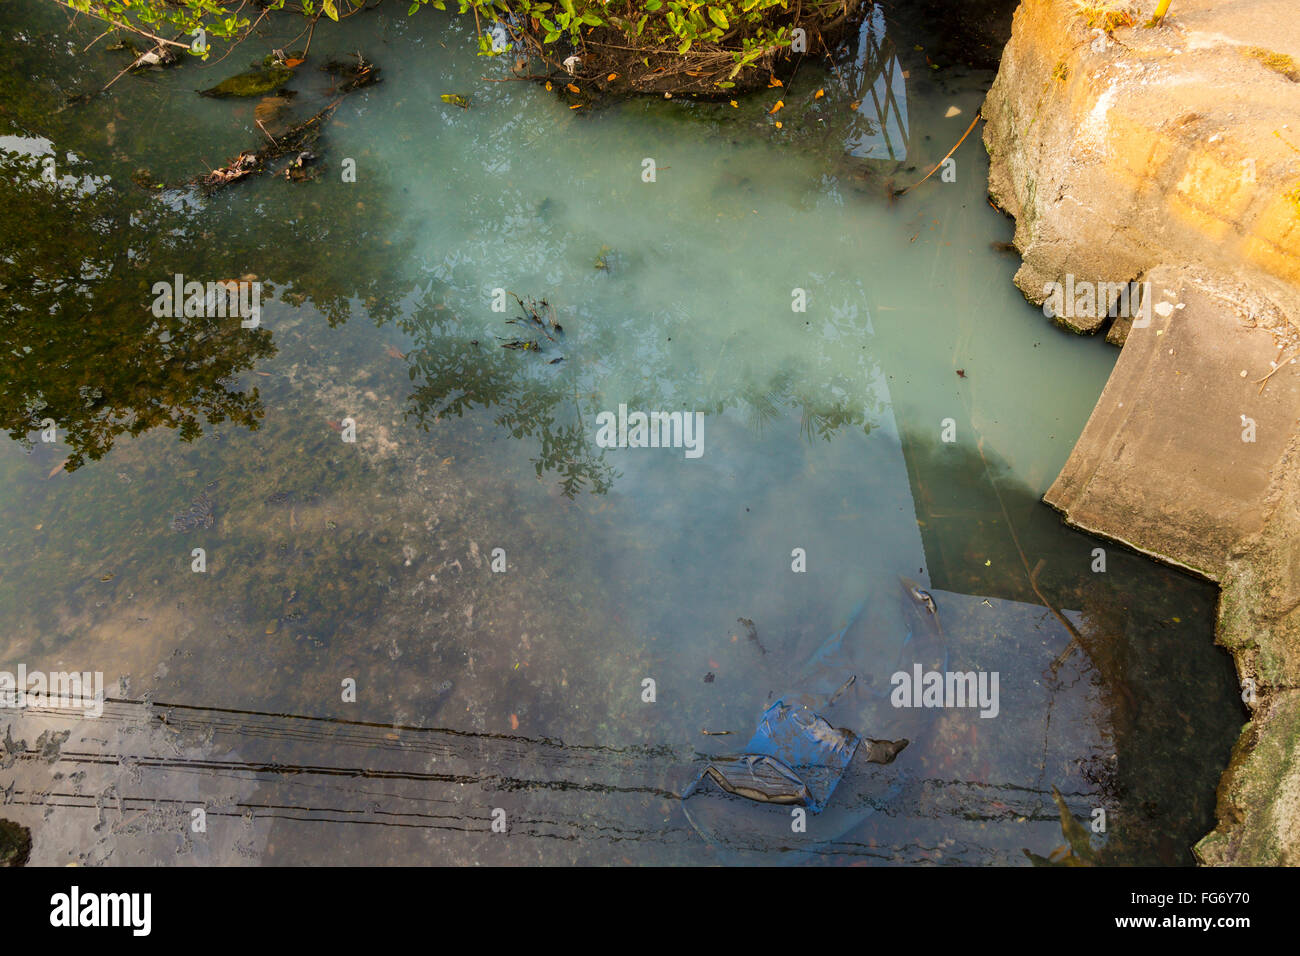 Untreated water makes its way to a stream from a pipe in Quepos, Puntarenas Province, Costa Rica. - Stock Image